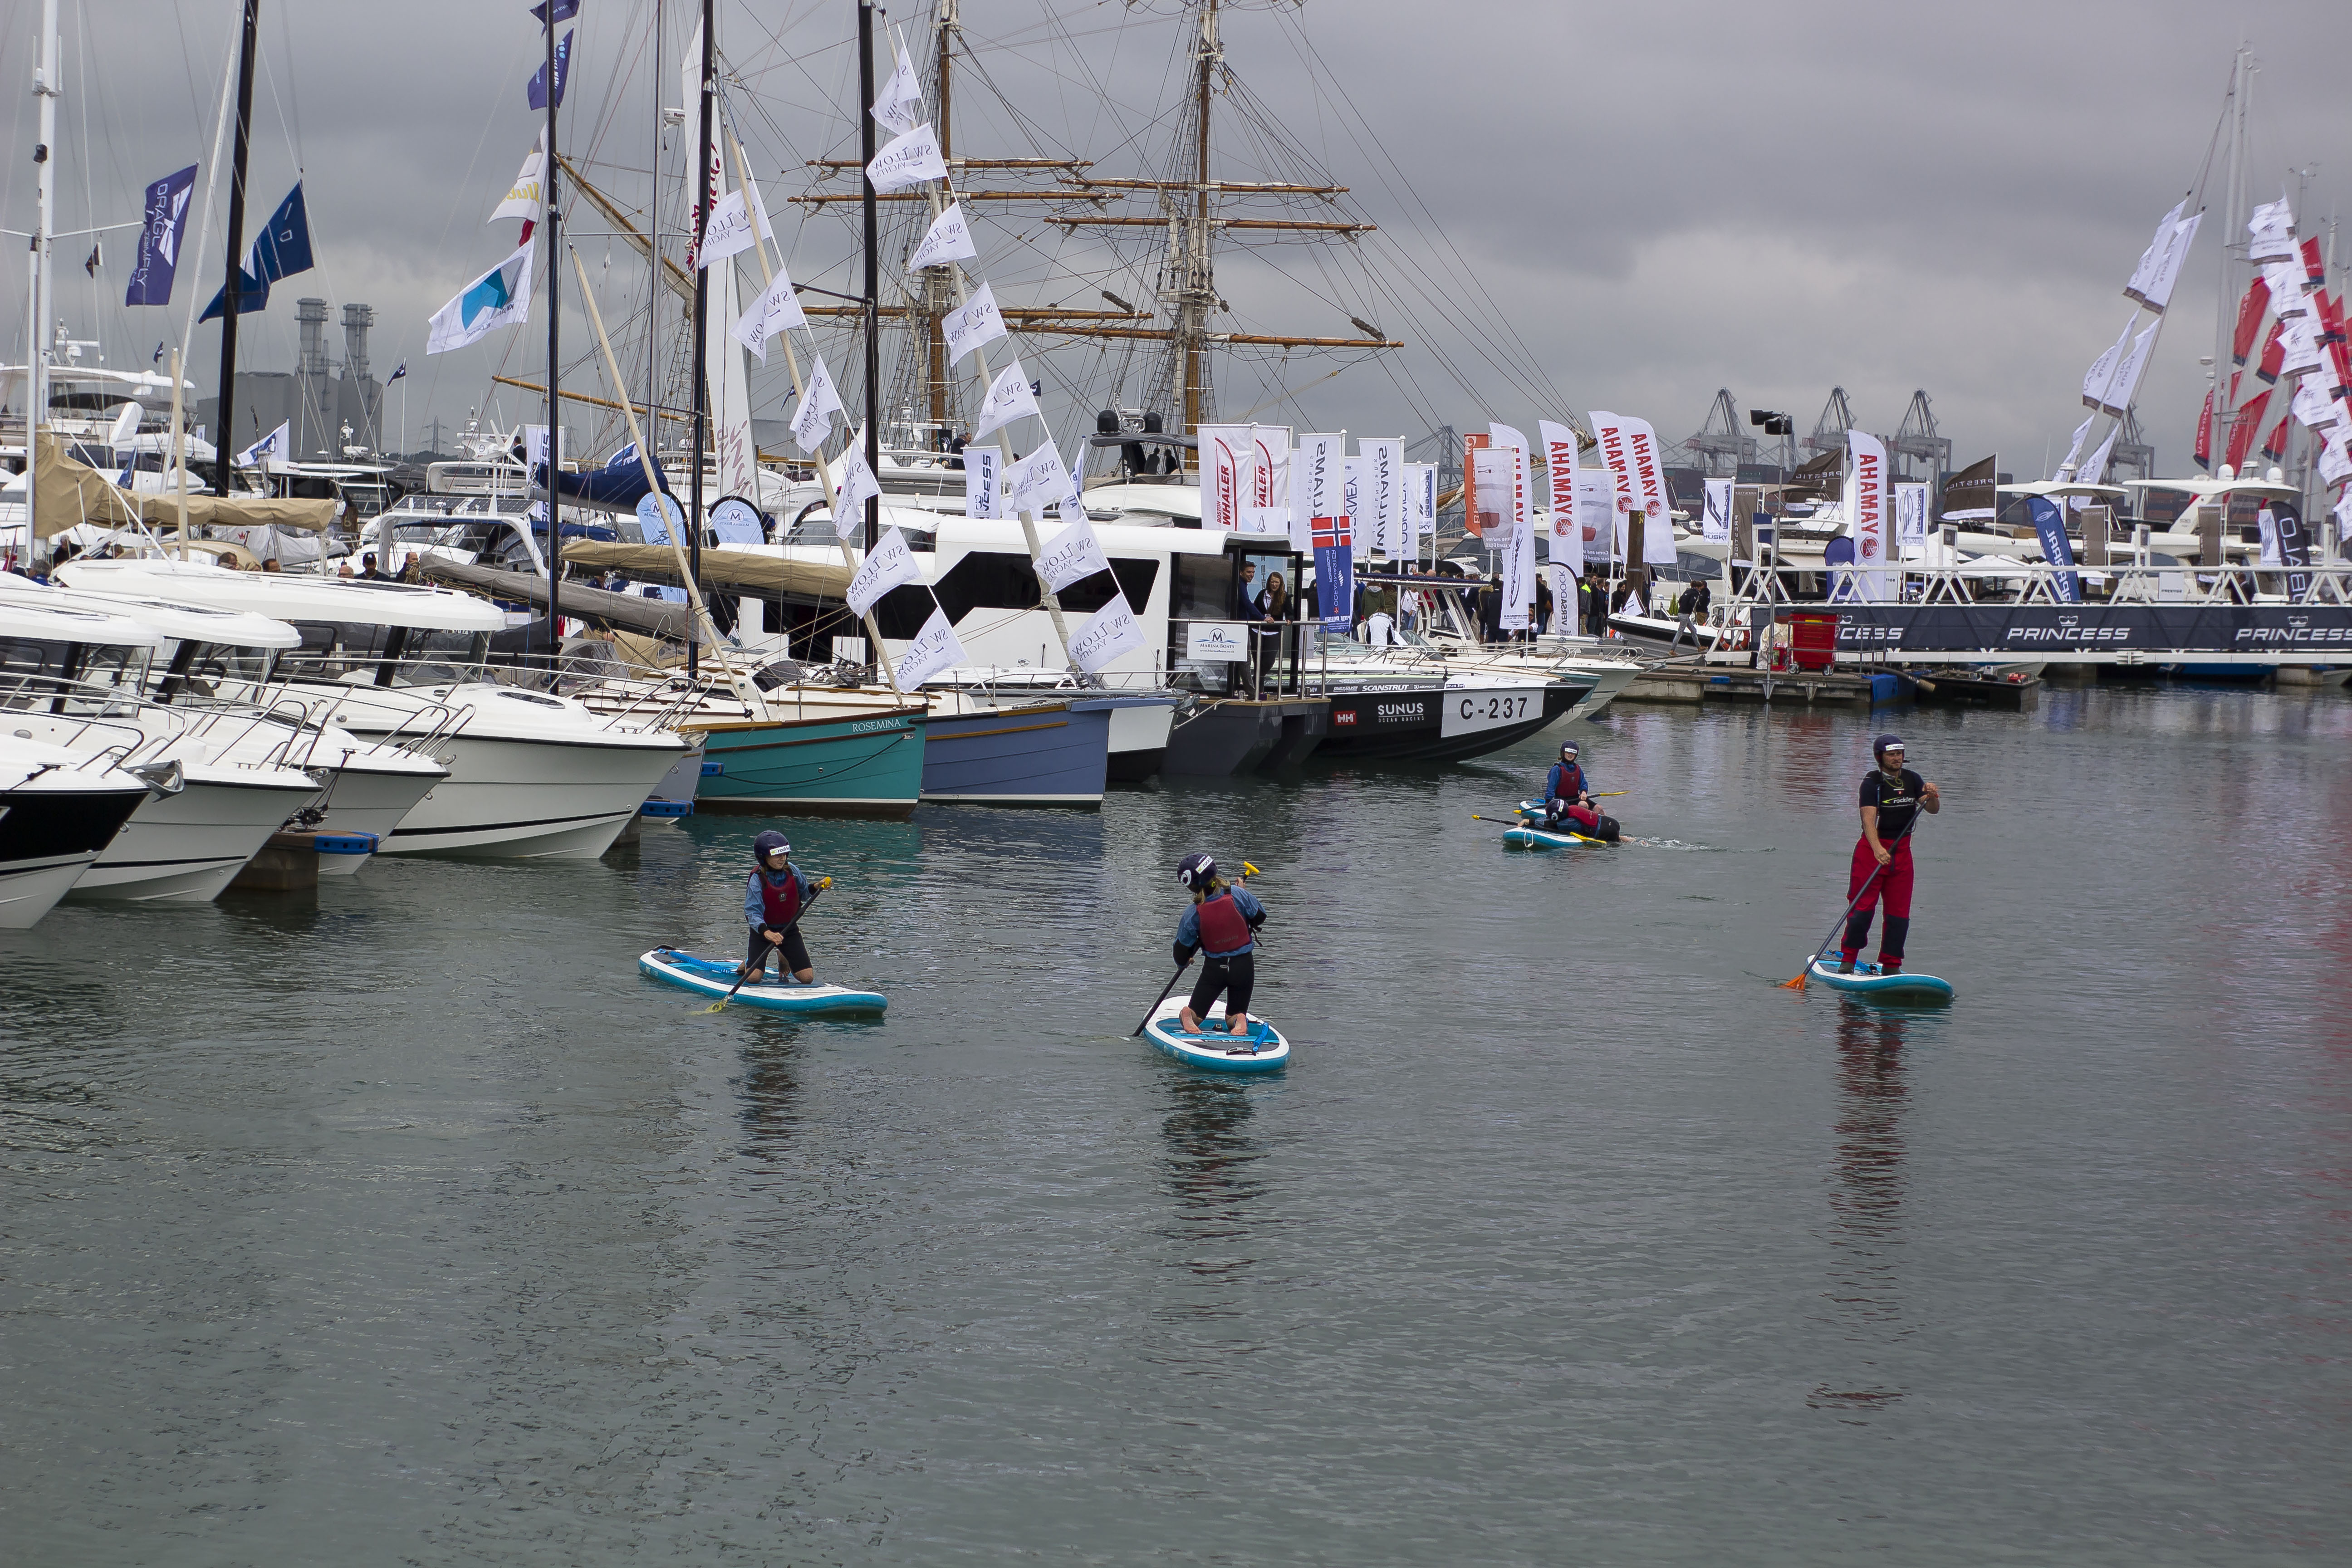 water sports at Southampton Boat Show